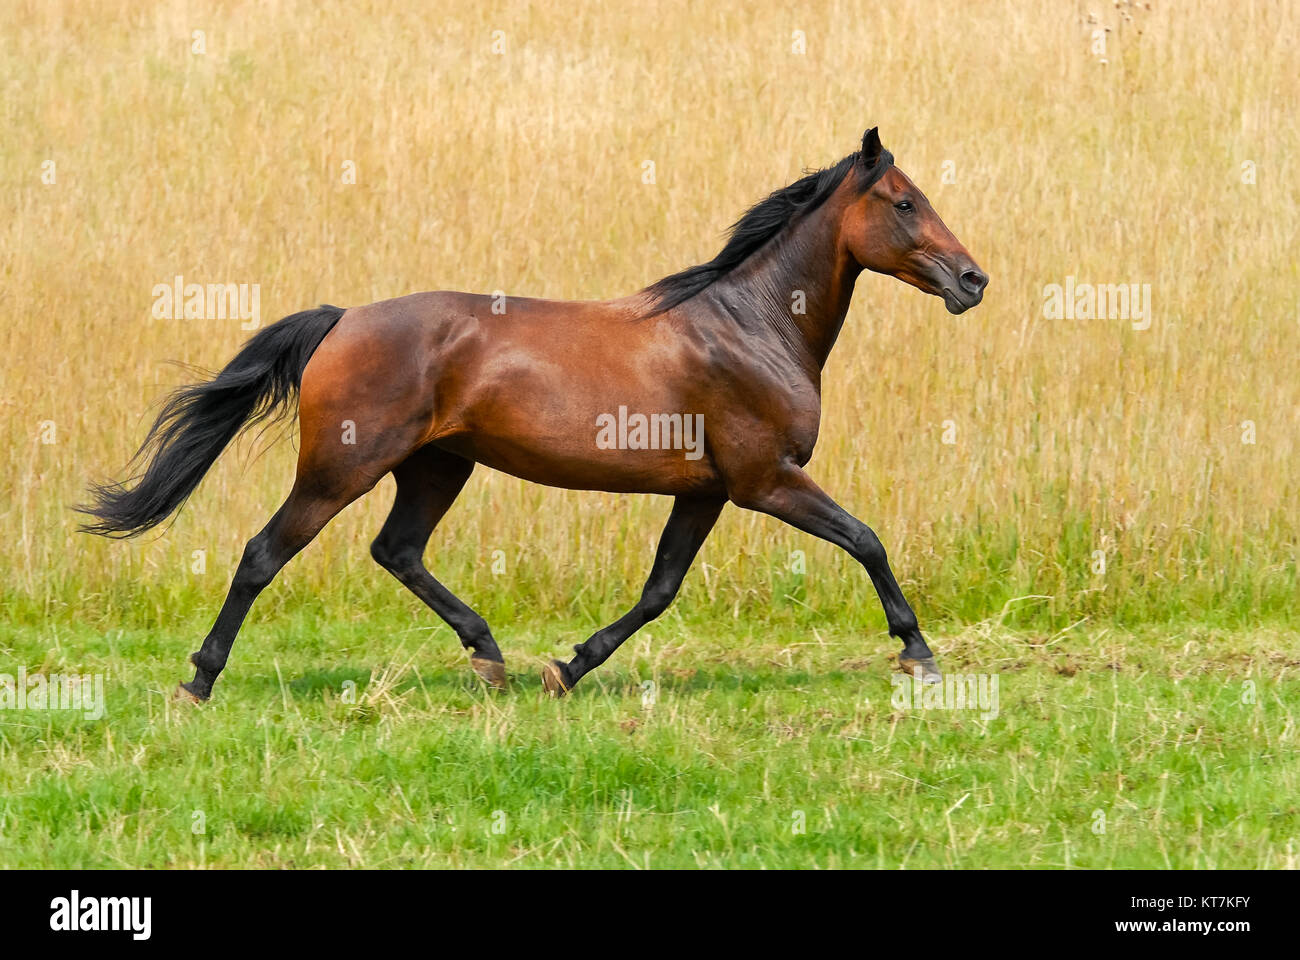 German Trotter, a horse breed, brown colored mare runs at a smart trot in the green countryside, Germany. - Stock Image